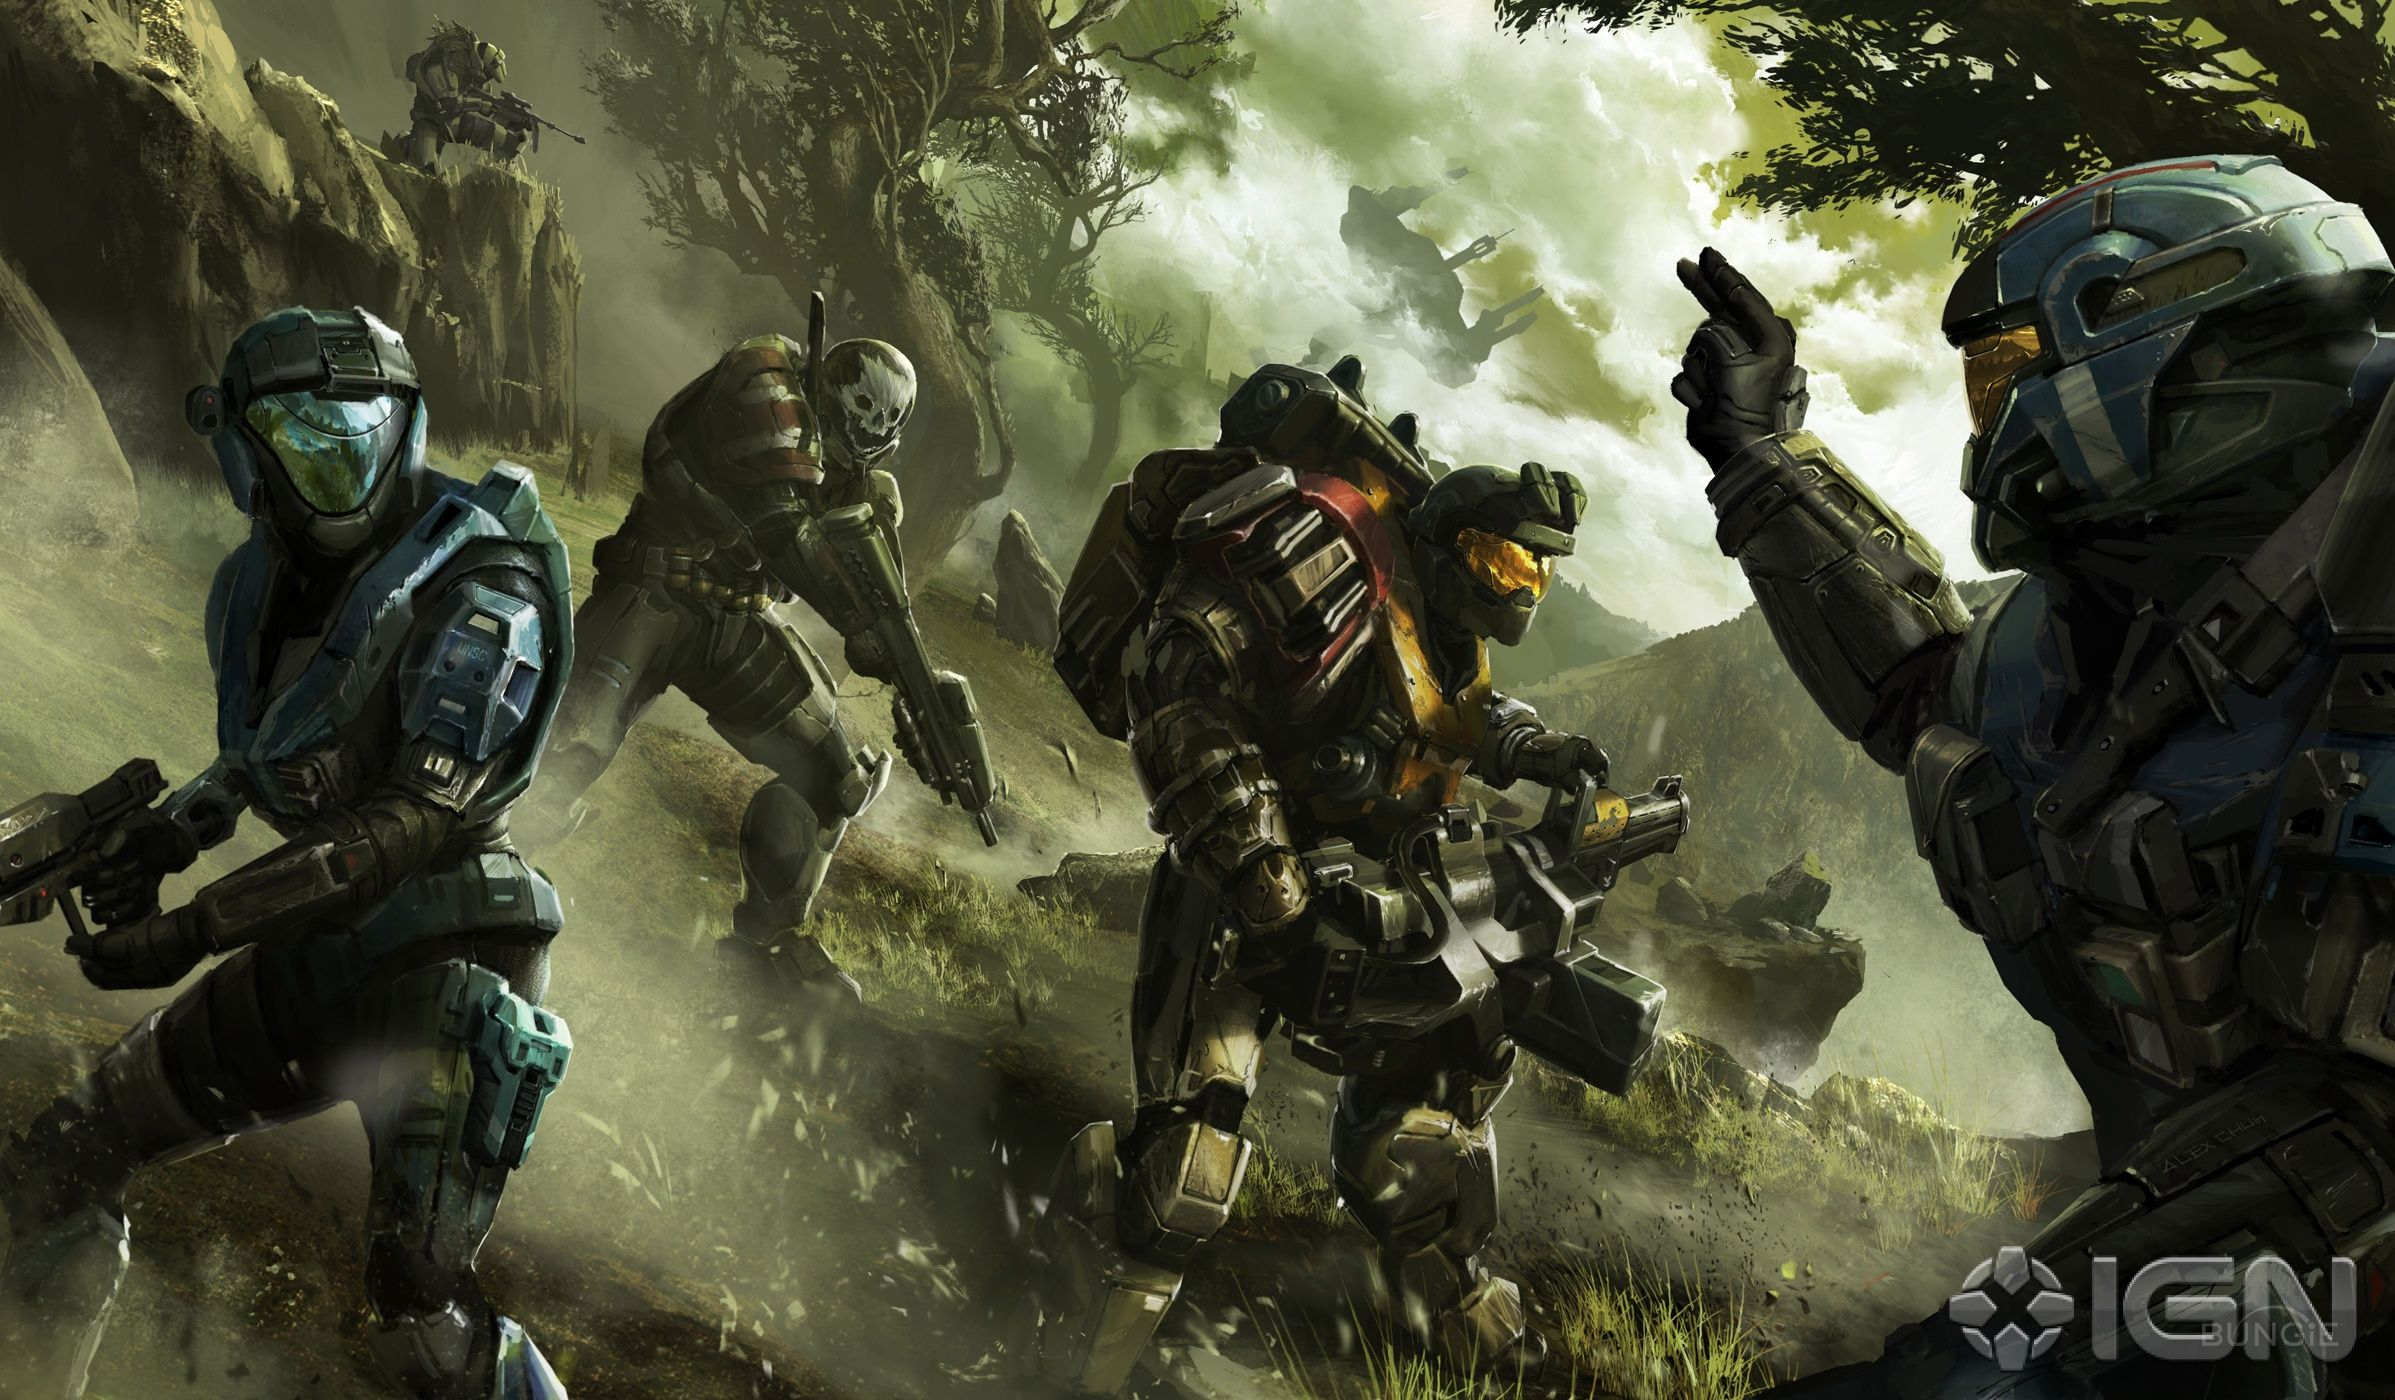 Halo Reach Noble Team Halo Reach Halo Video Game Halo